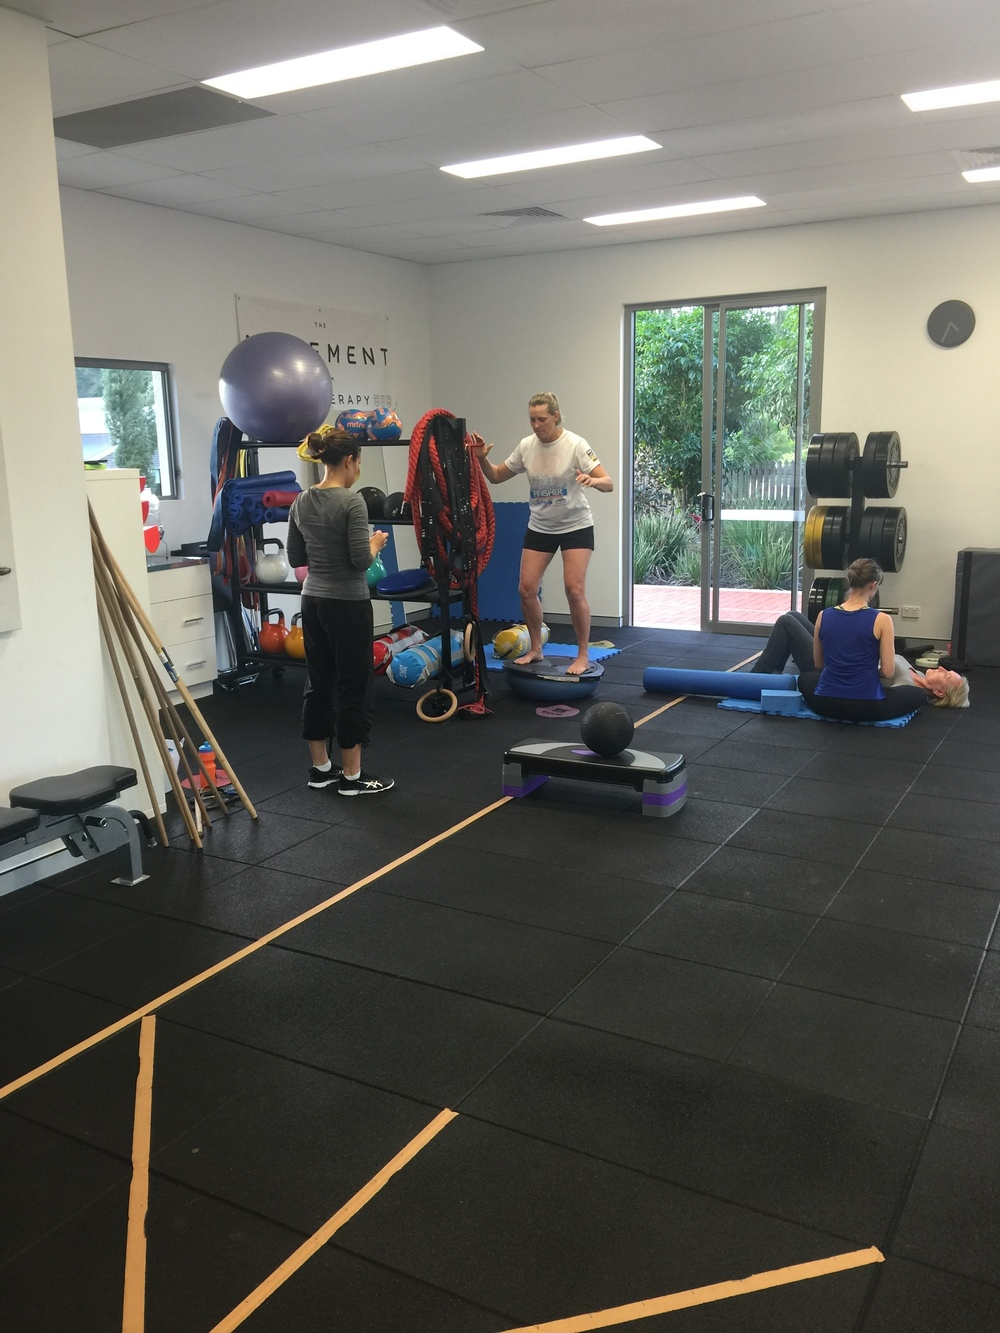 Chari and Issy working in our gym with 2 clients.